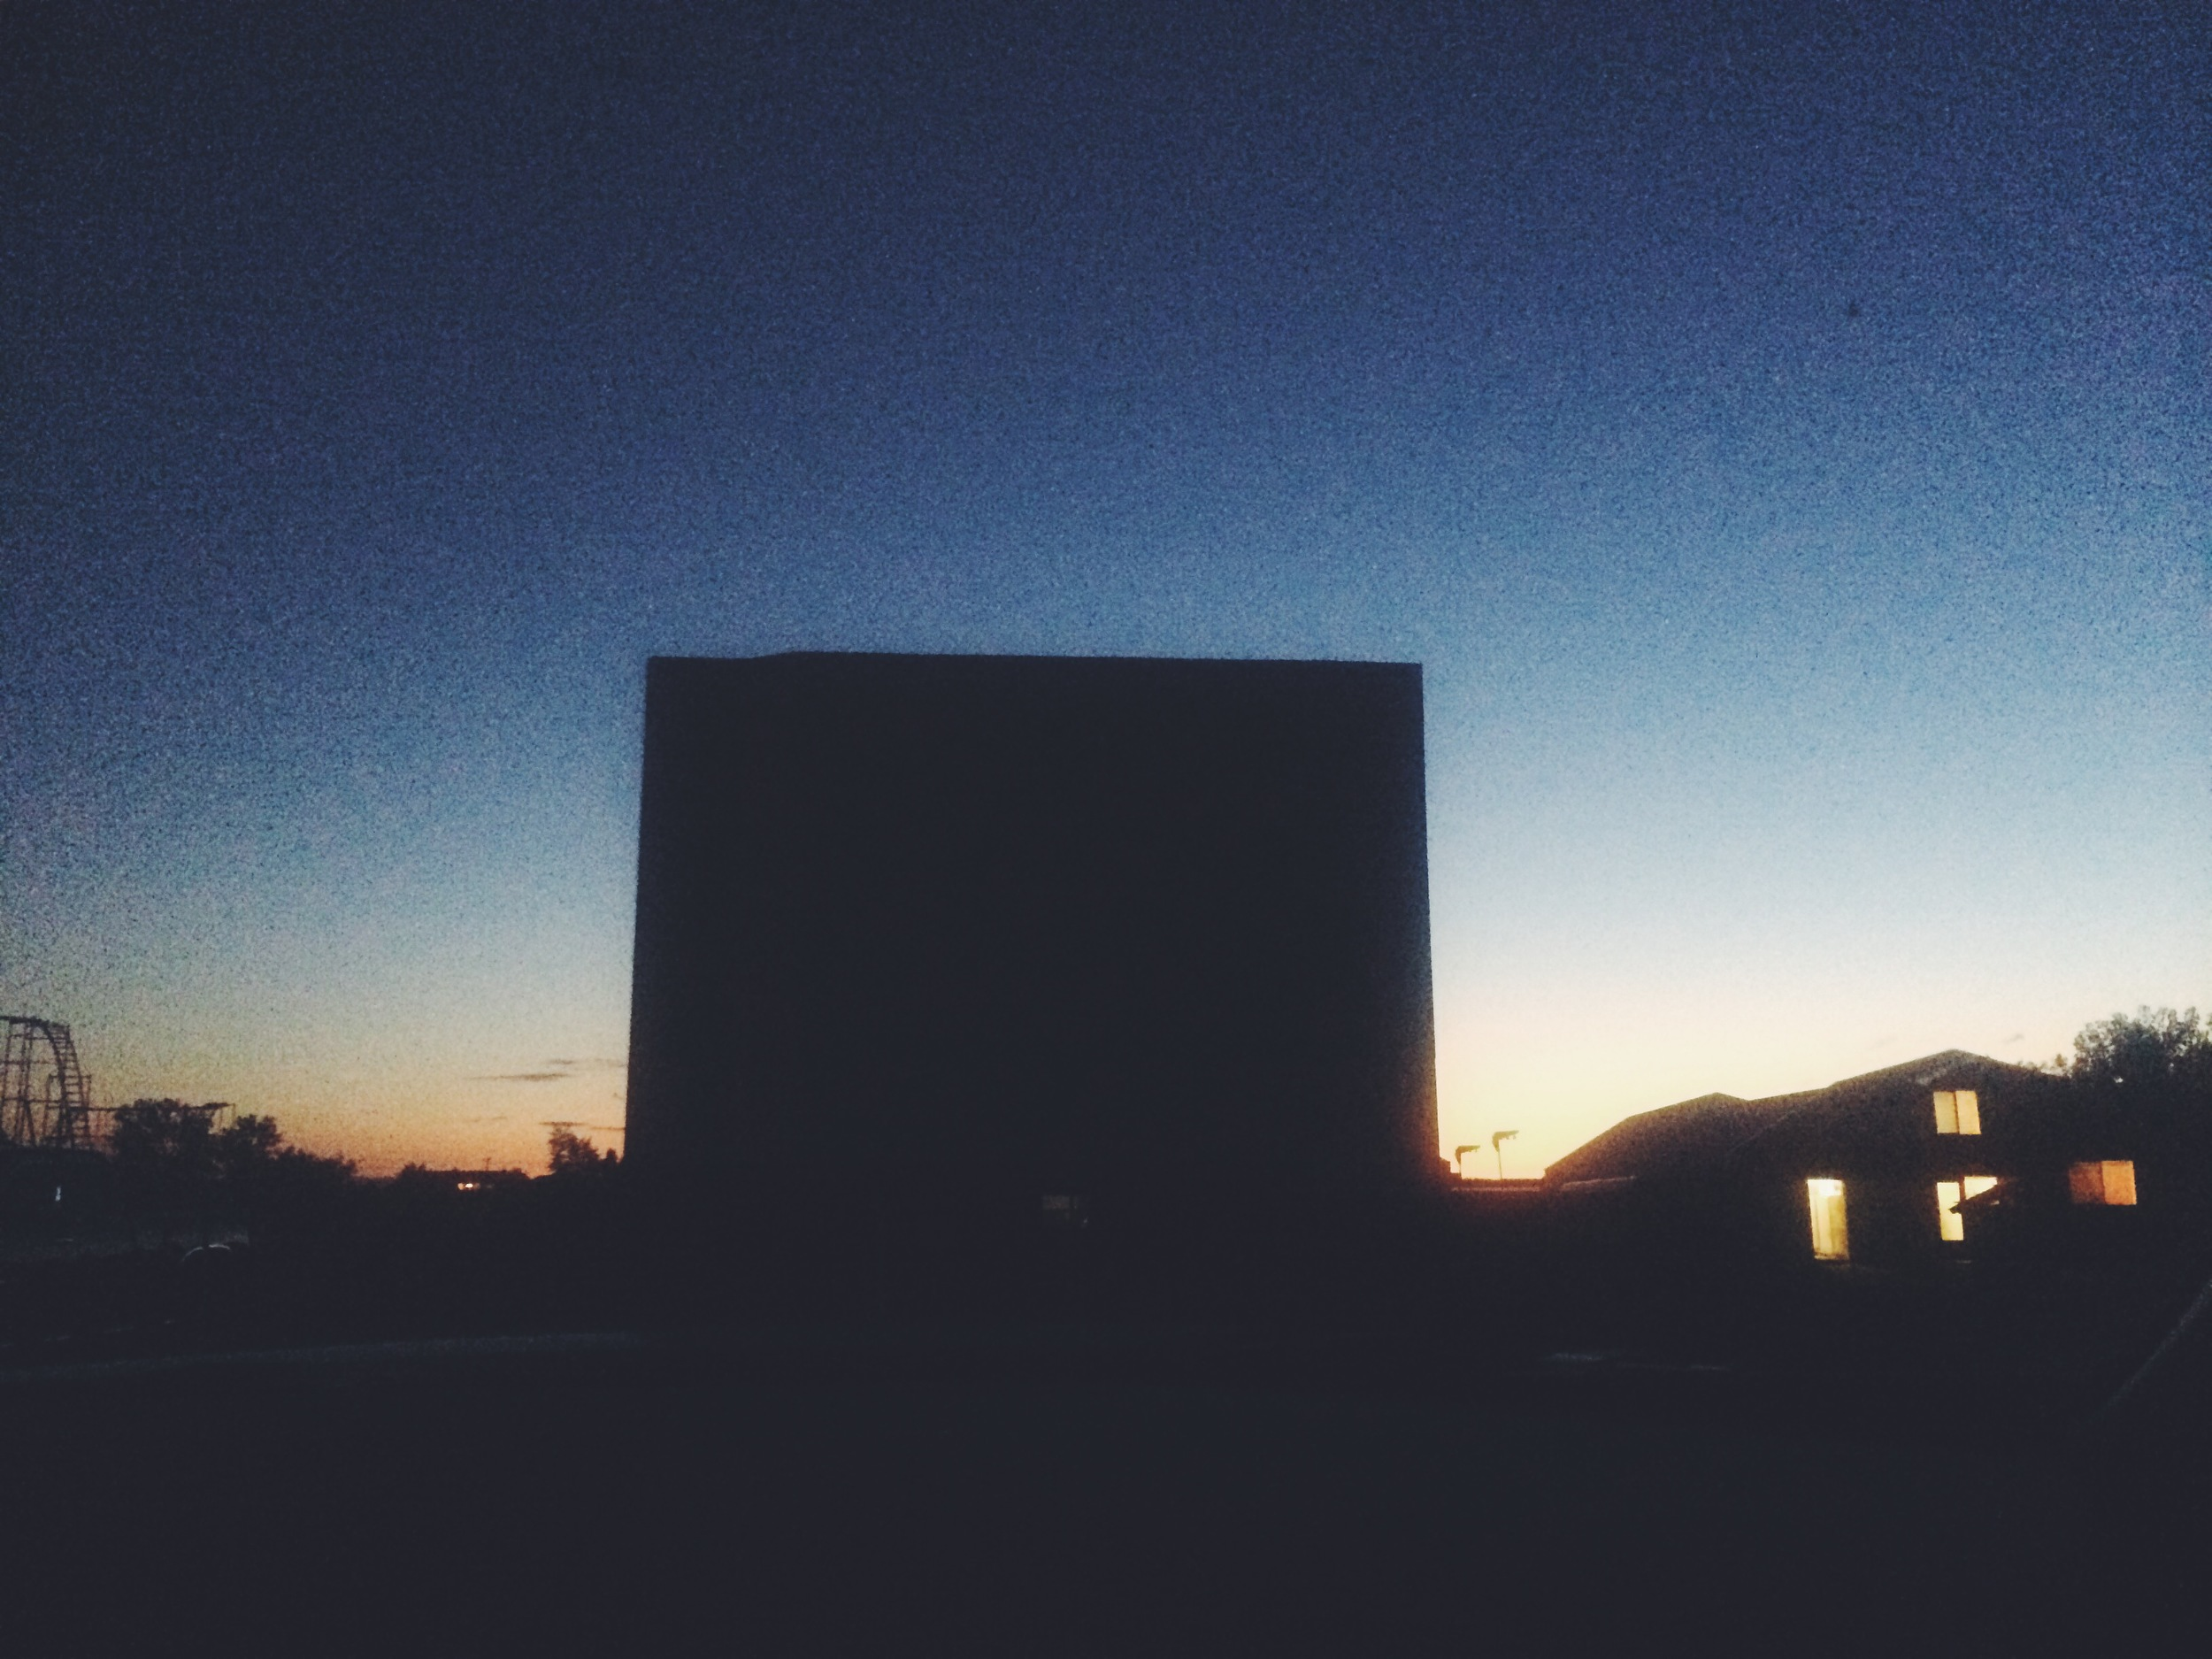 Our drive in movie experience in where we let the rental car battery die out because we didn't know how to turn off the darn dash lights! We were 1 of 3 cars there that night. Scary. Thanks for the jump Laurel Amusement Park Drive-In.